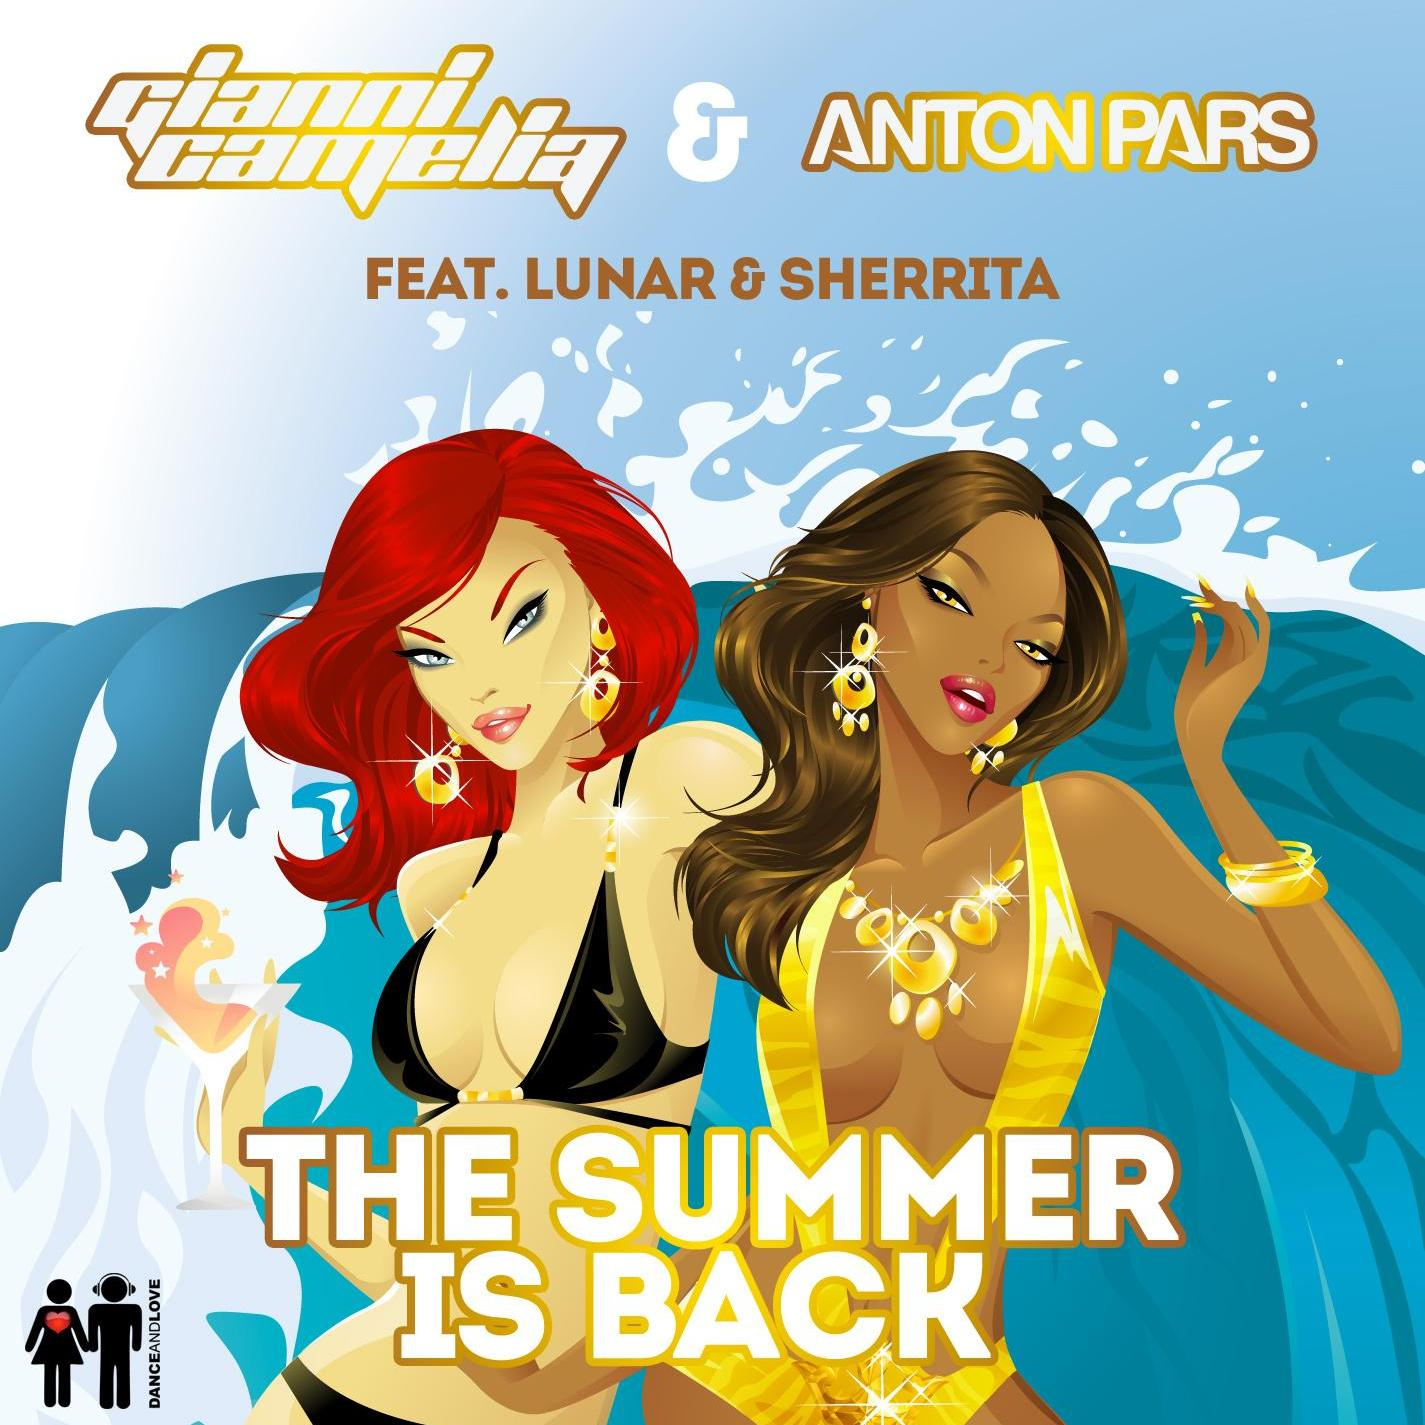 Gianni Camelia & Anton Pars Feat, Lunar & Sherrita - The Summer Is Back (Stefano Pain Remix Radio Edit)